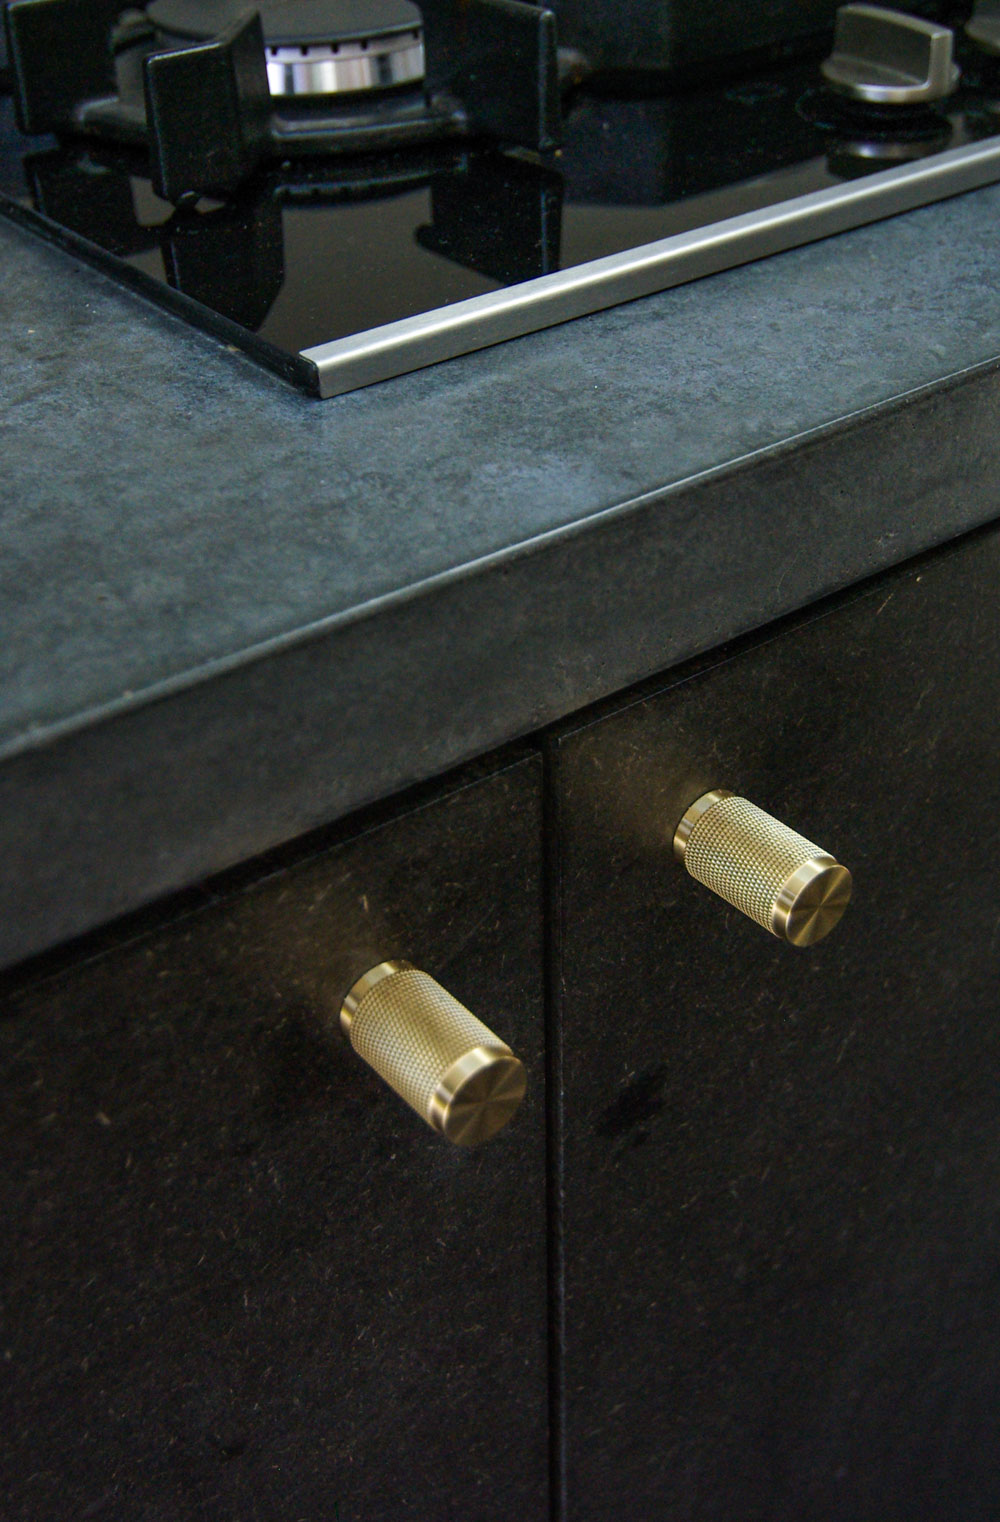 Close up of the concrete kitchen worktop and brass handles.